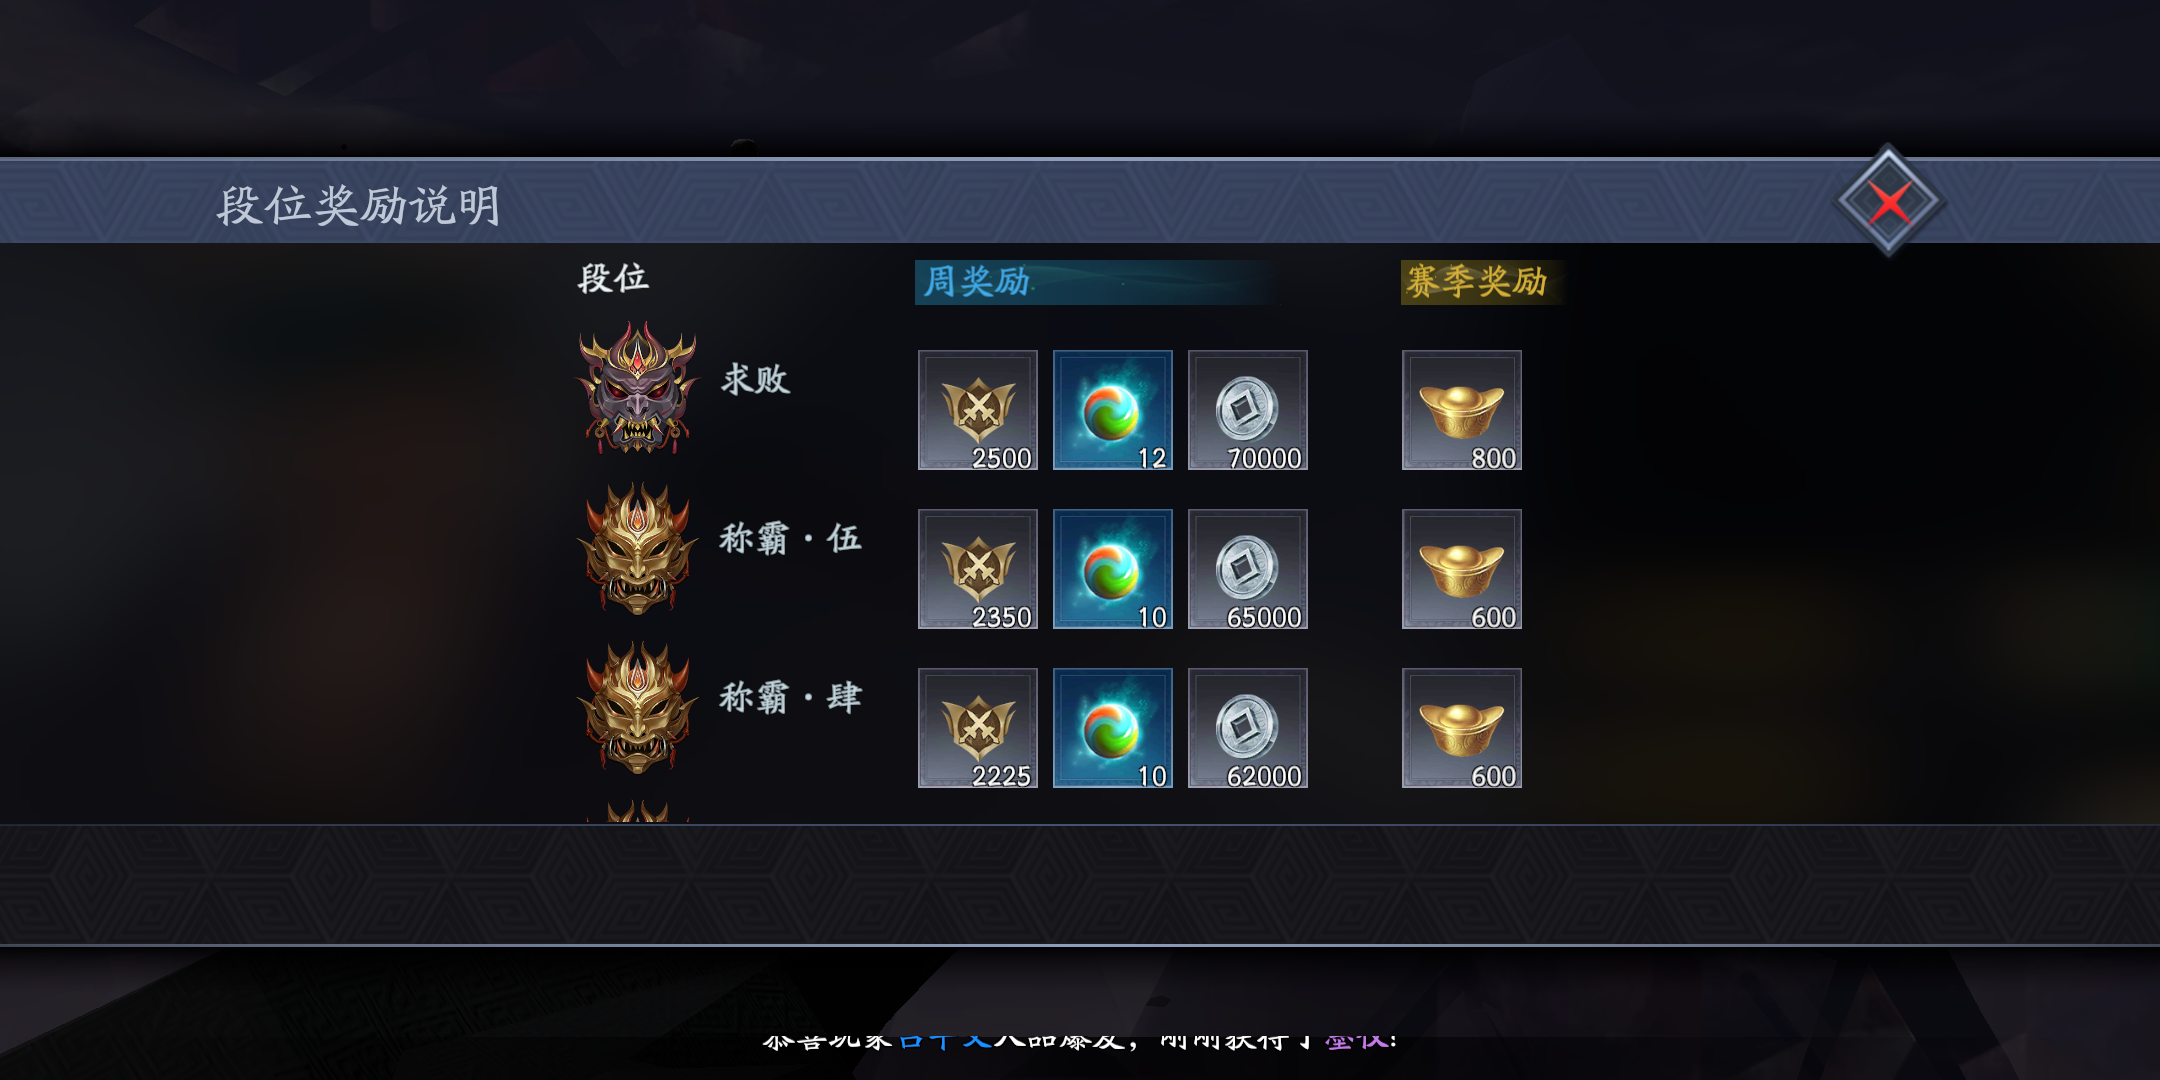 1v1段位.png